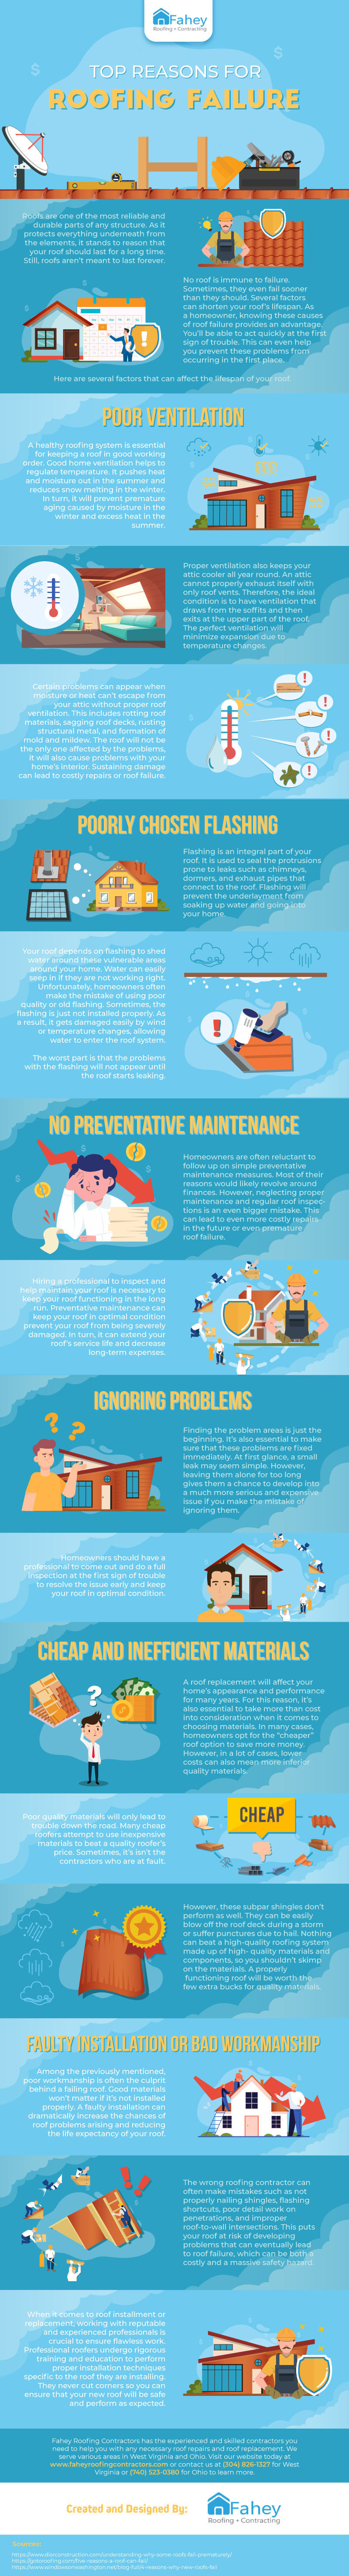 Top Reasons for Roof Failure Infographic